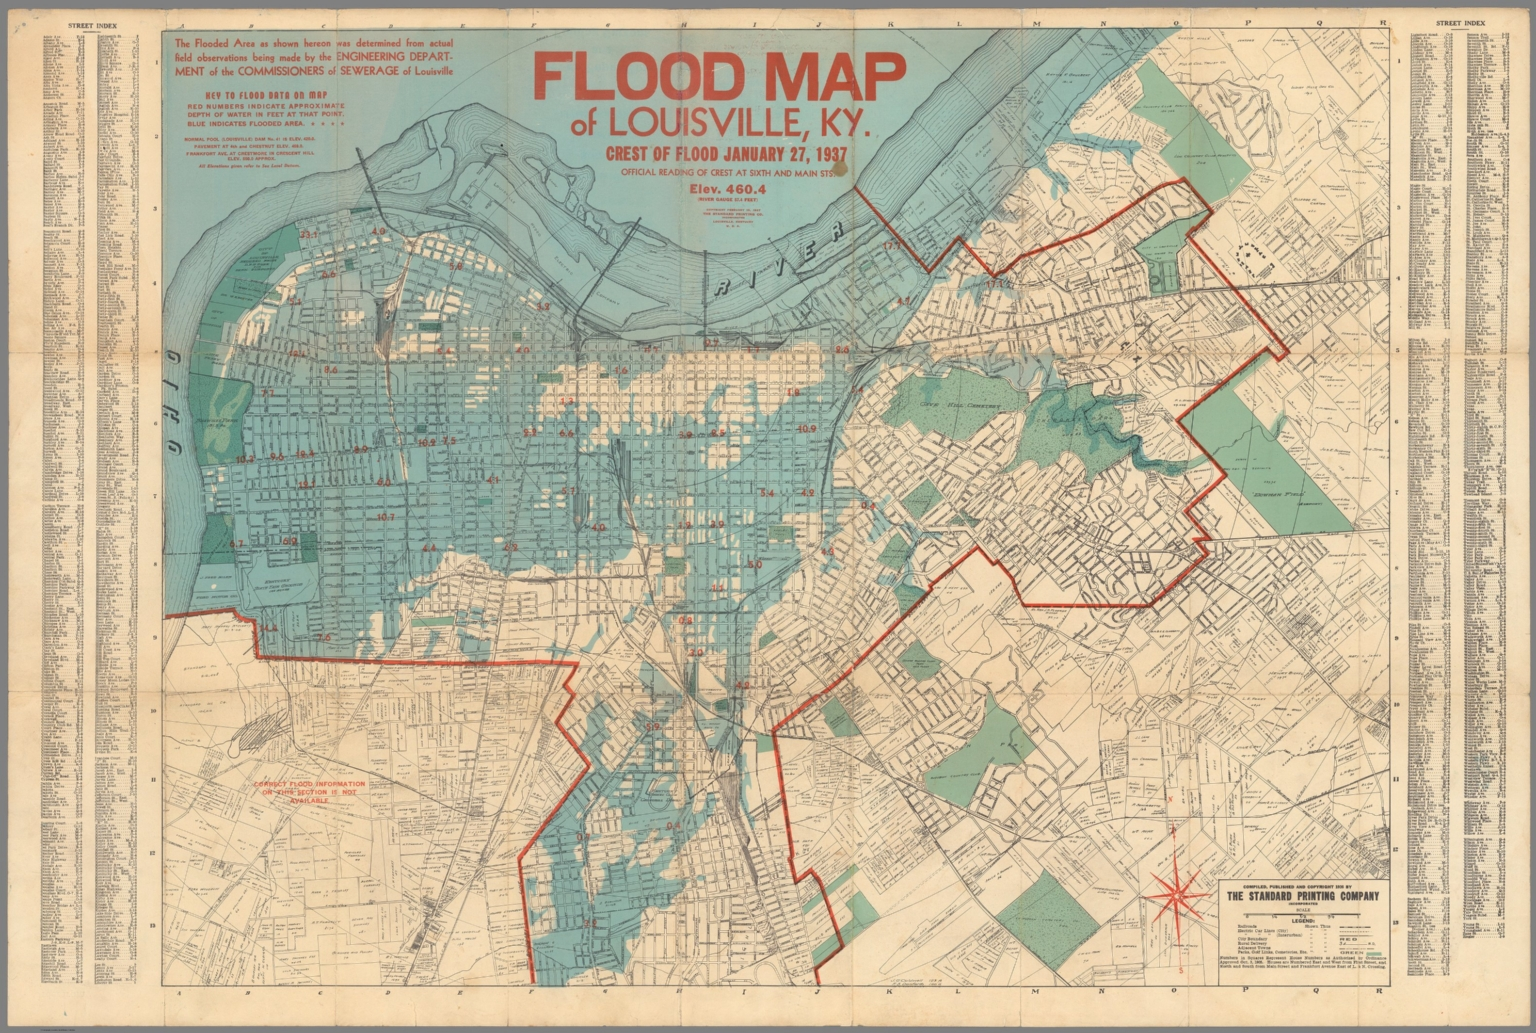 Louisville Flood Map Showing Flooded Area of Louisville ... on university of kentucky, map jefferson county ky, map nicholasville ky, university of louisville, map jeffersonville in, map of central kentucky cities, map of downtown louisville, map radcliff ky, virginia beach, st. louis, map of abandoned coal mine in kentucky, map birmingham al, oklahoma city, map austin ky, map ashland ky, map memphis tn, ohio river, map harlan ky, map of downtown jeffersonville indiana, map henderson ky, little rock, map of kennedy expressway chicago il, des moines, map murray ky, map kenton county ky, bowling green, map of louisville kentucky and surrounding area, map bowling green ky,